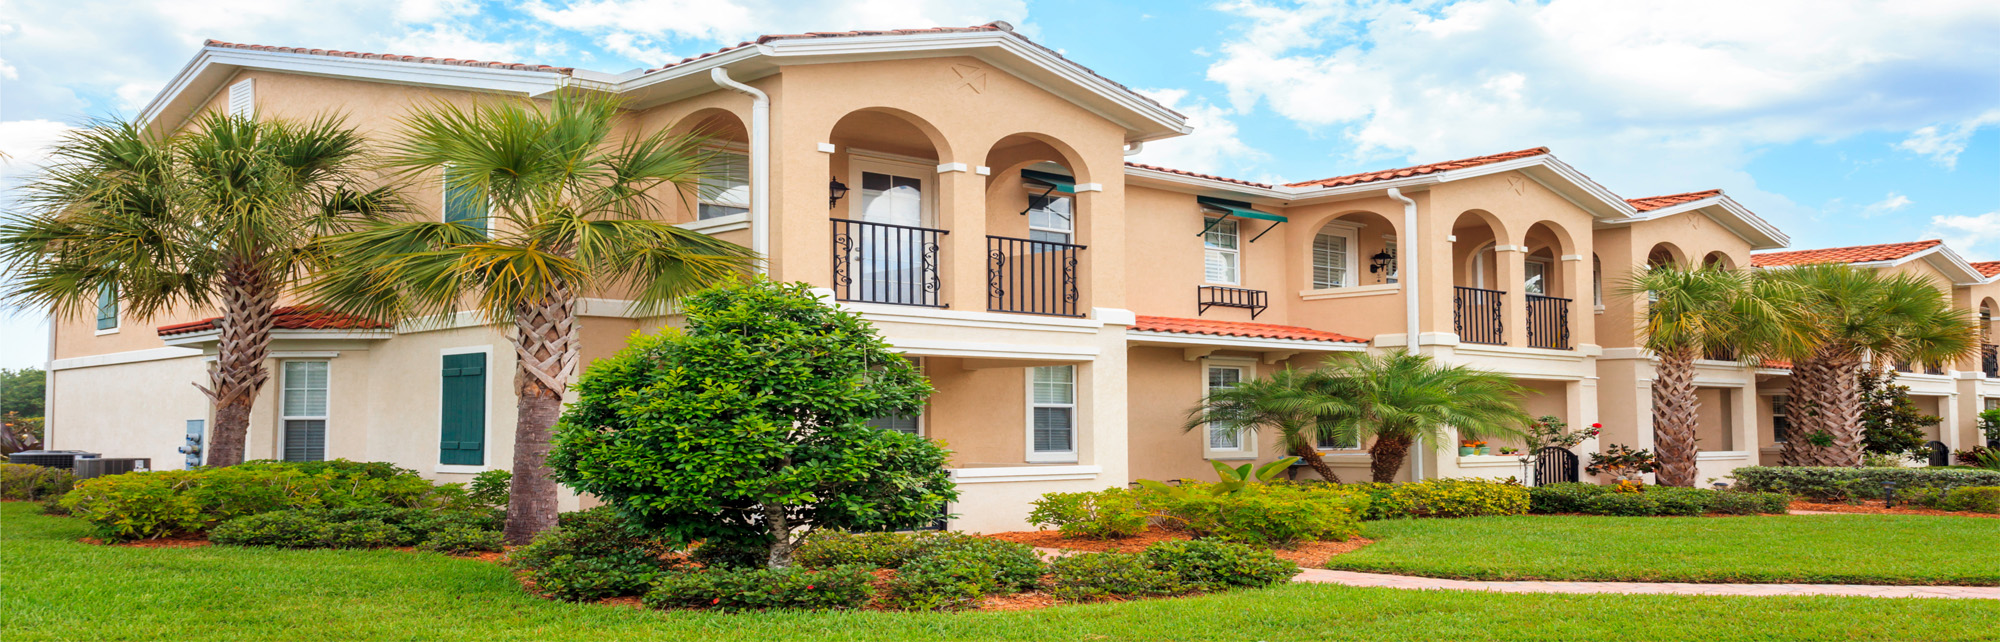 Property Management Services West Palm Beach